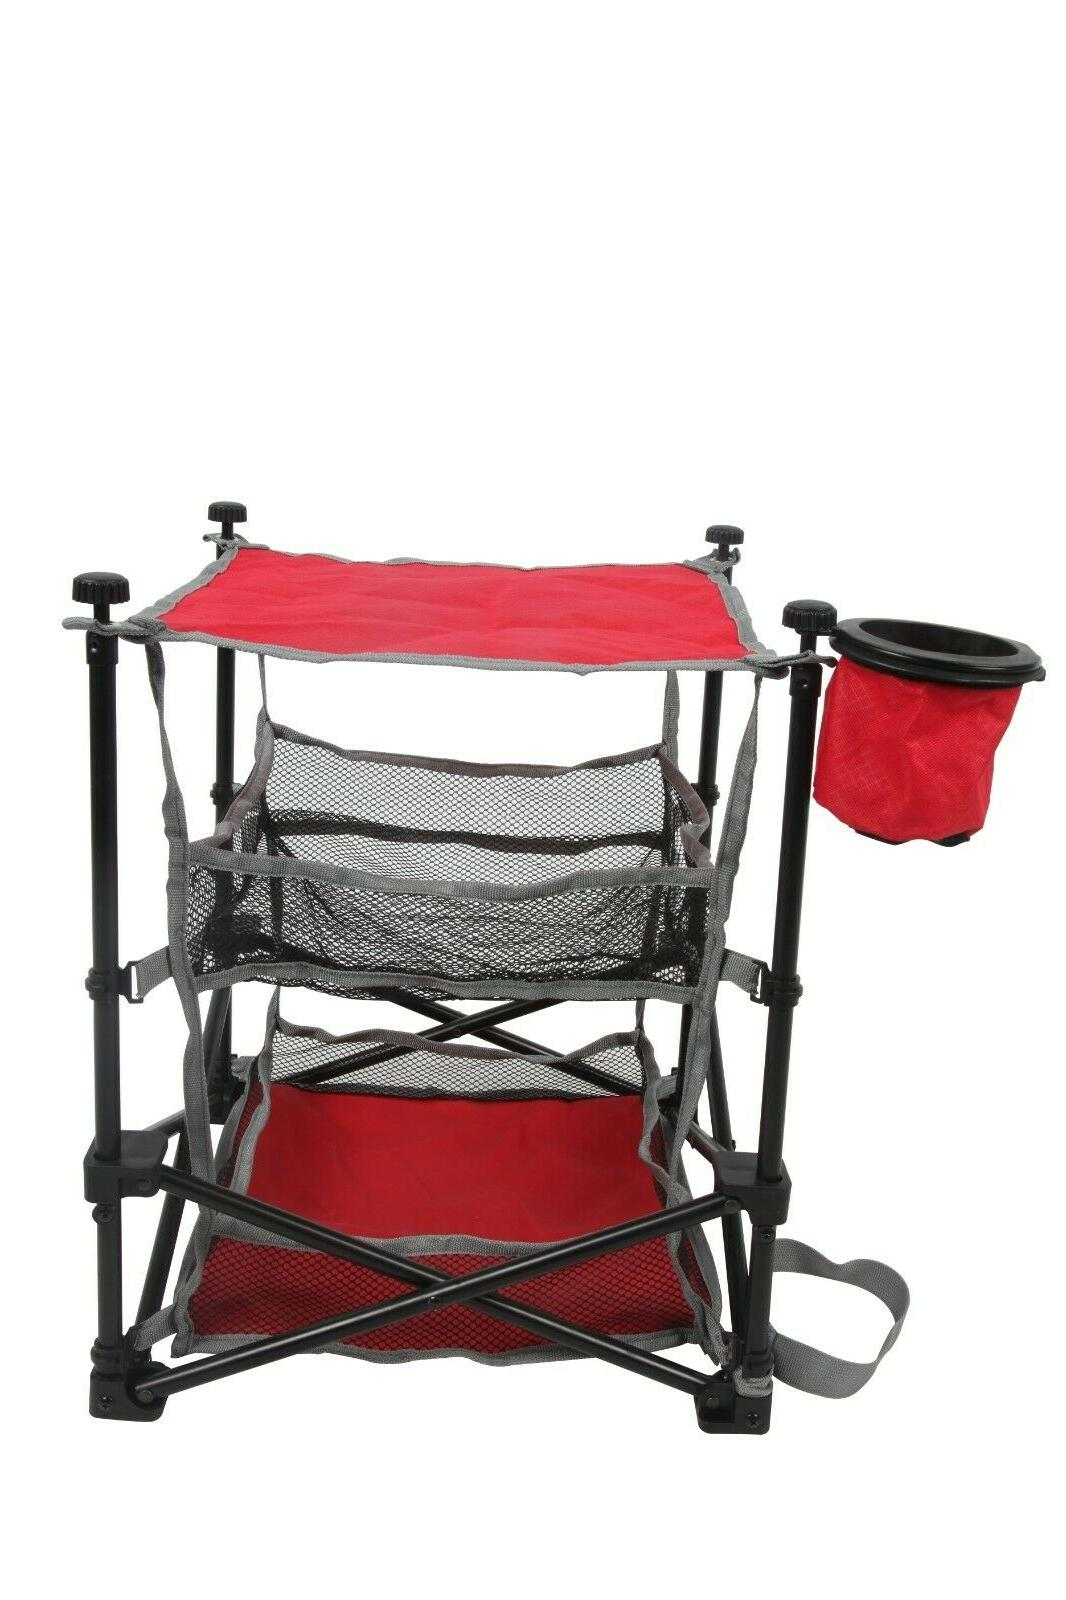 foldable lawn end table with three shelves